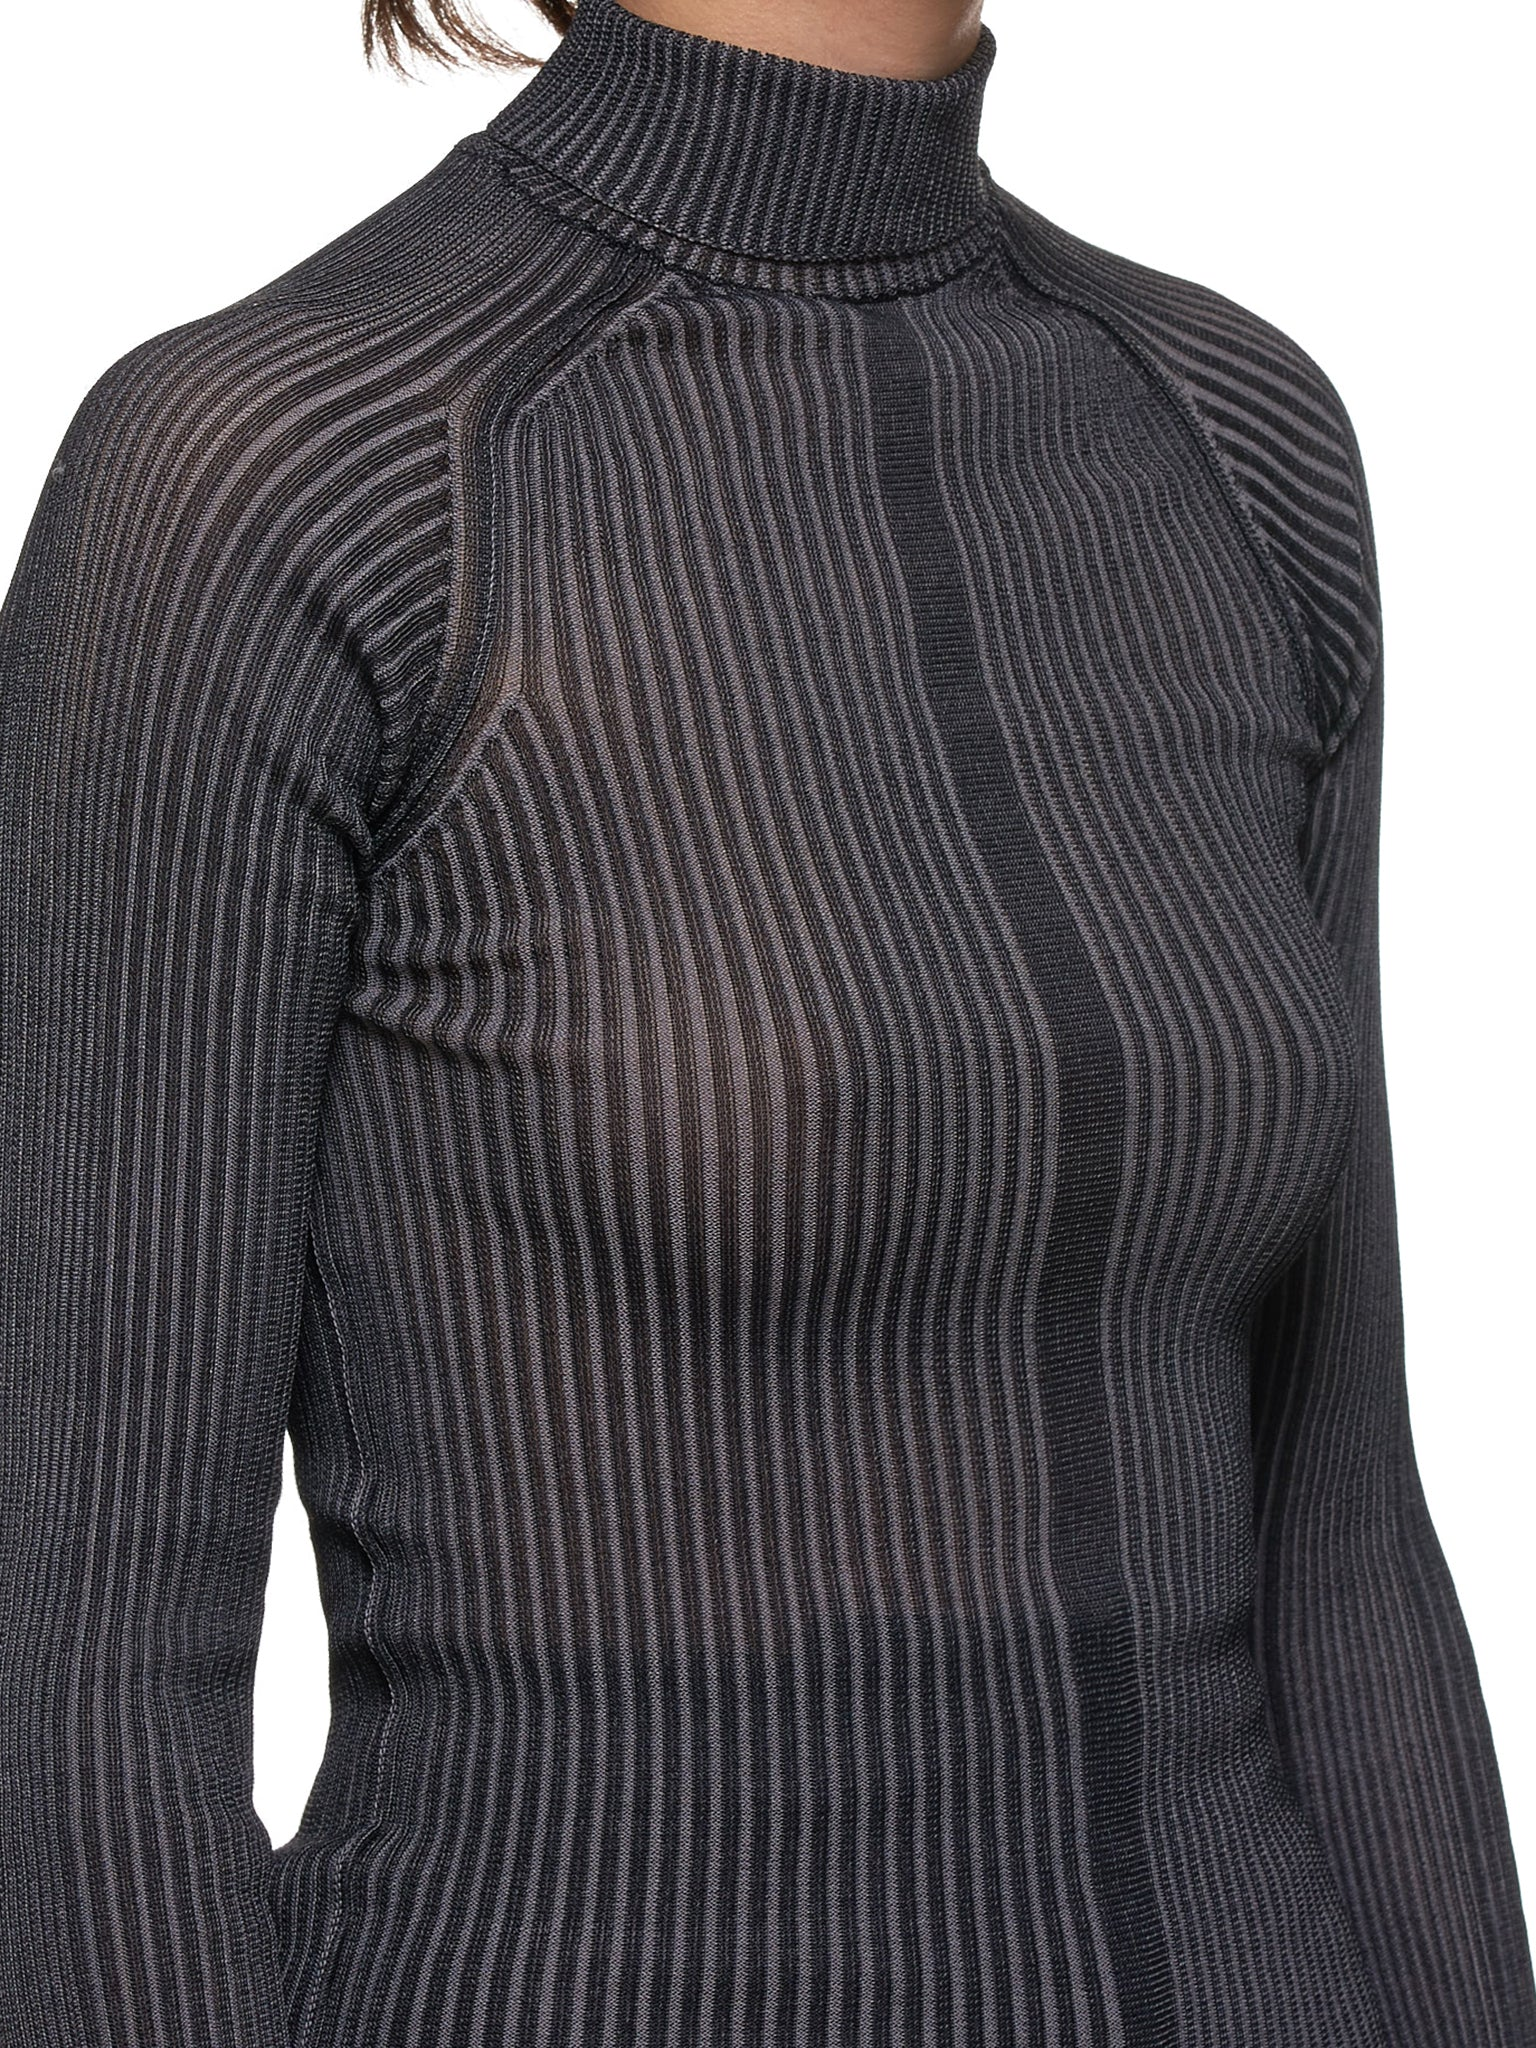 Acne Studios Turtleneck - Hlorenzo Detail 2